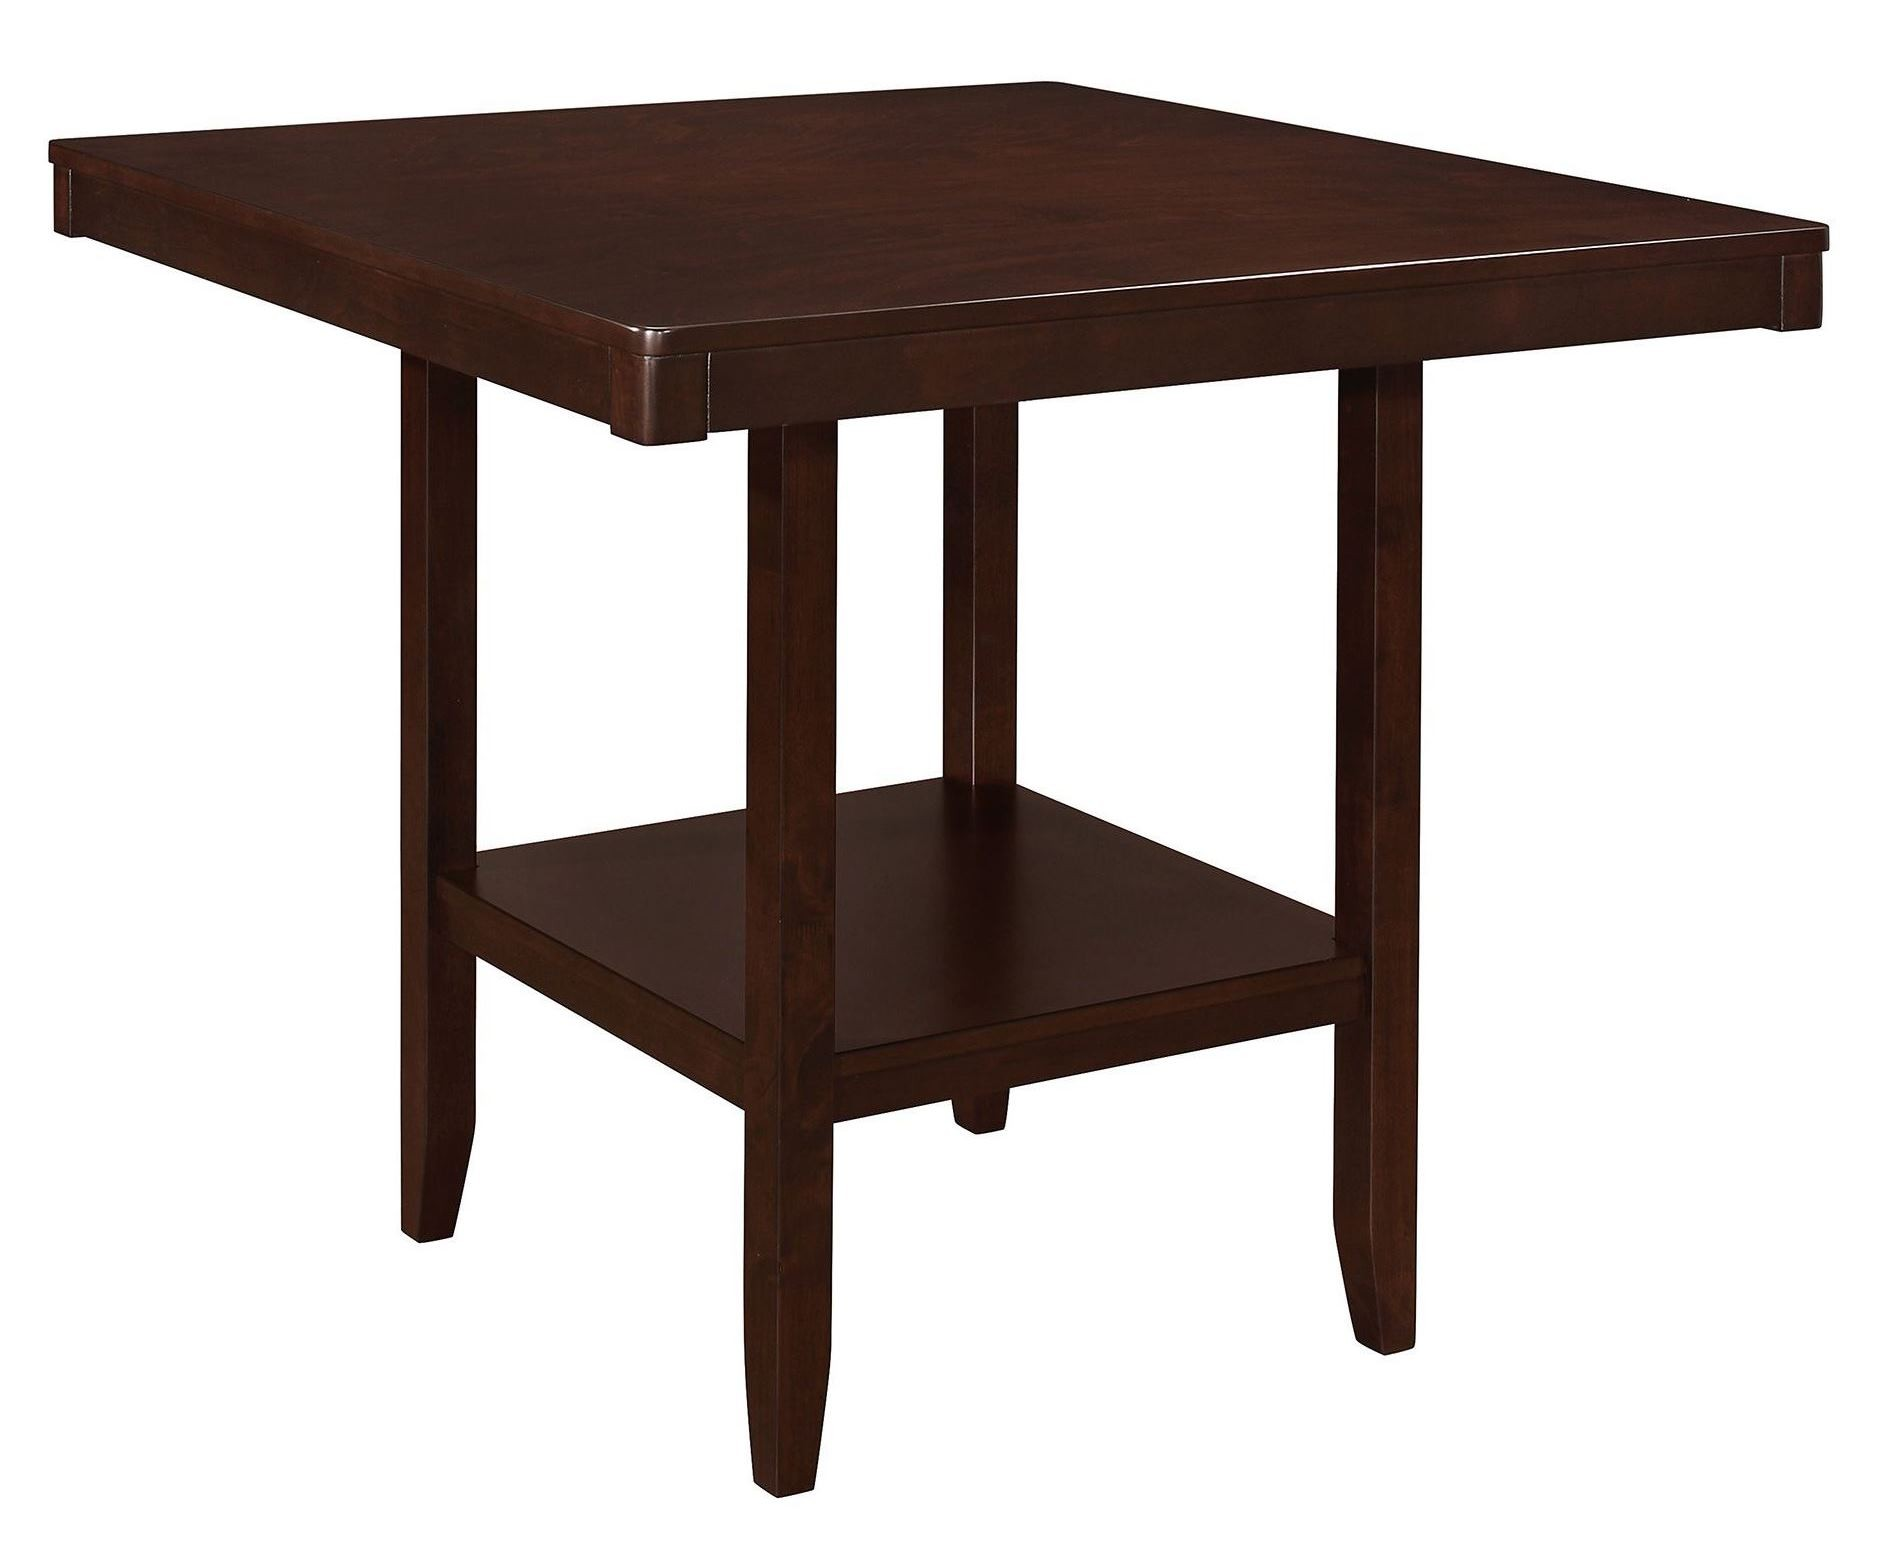 Fattori Espresso Counter Height Dining Table from Coaster  : 105308 c from colemanfurniture.com size 1896 x 1544 jpeg 144kB